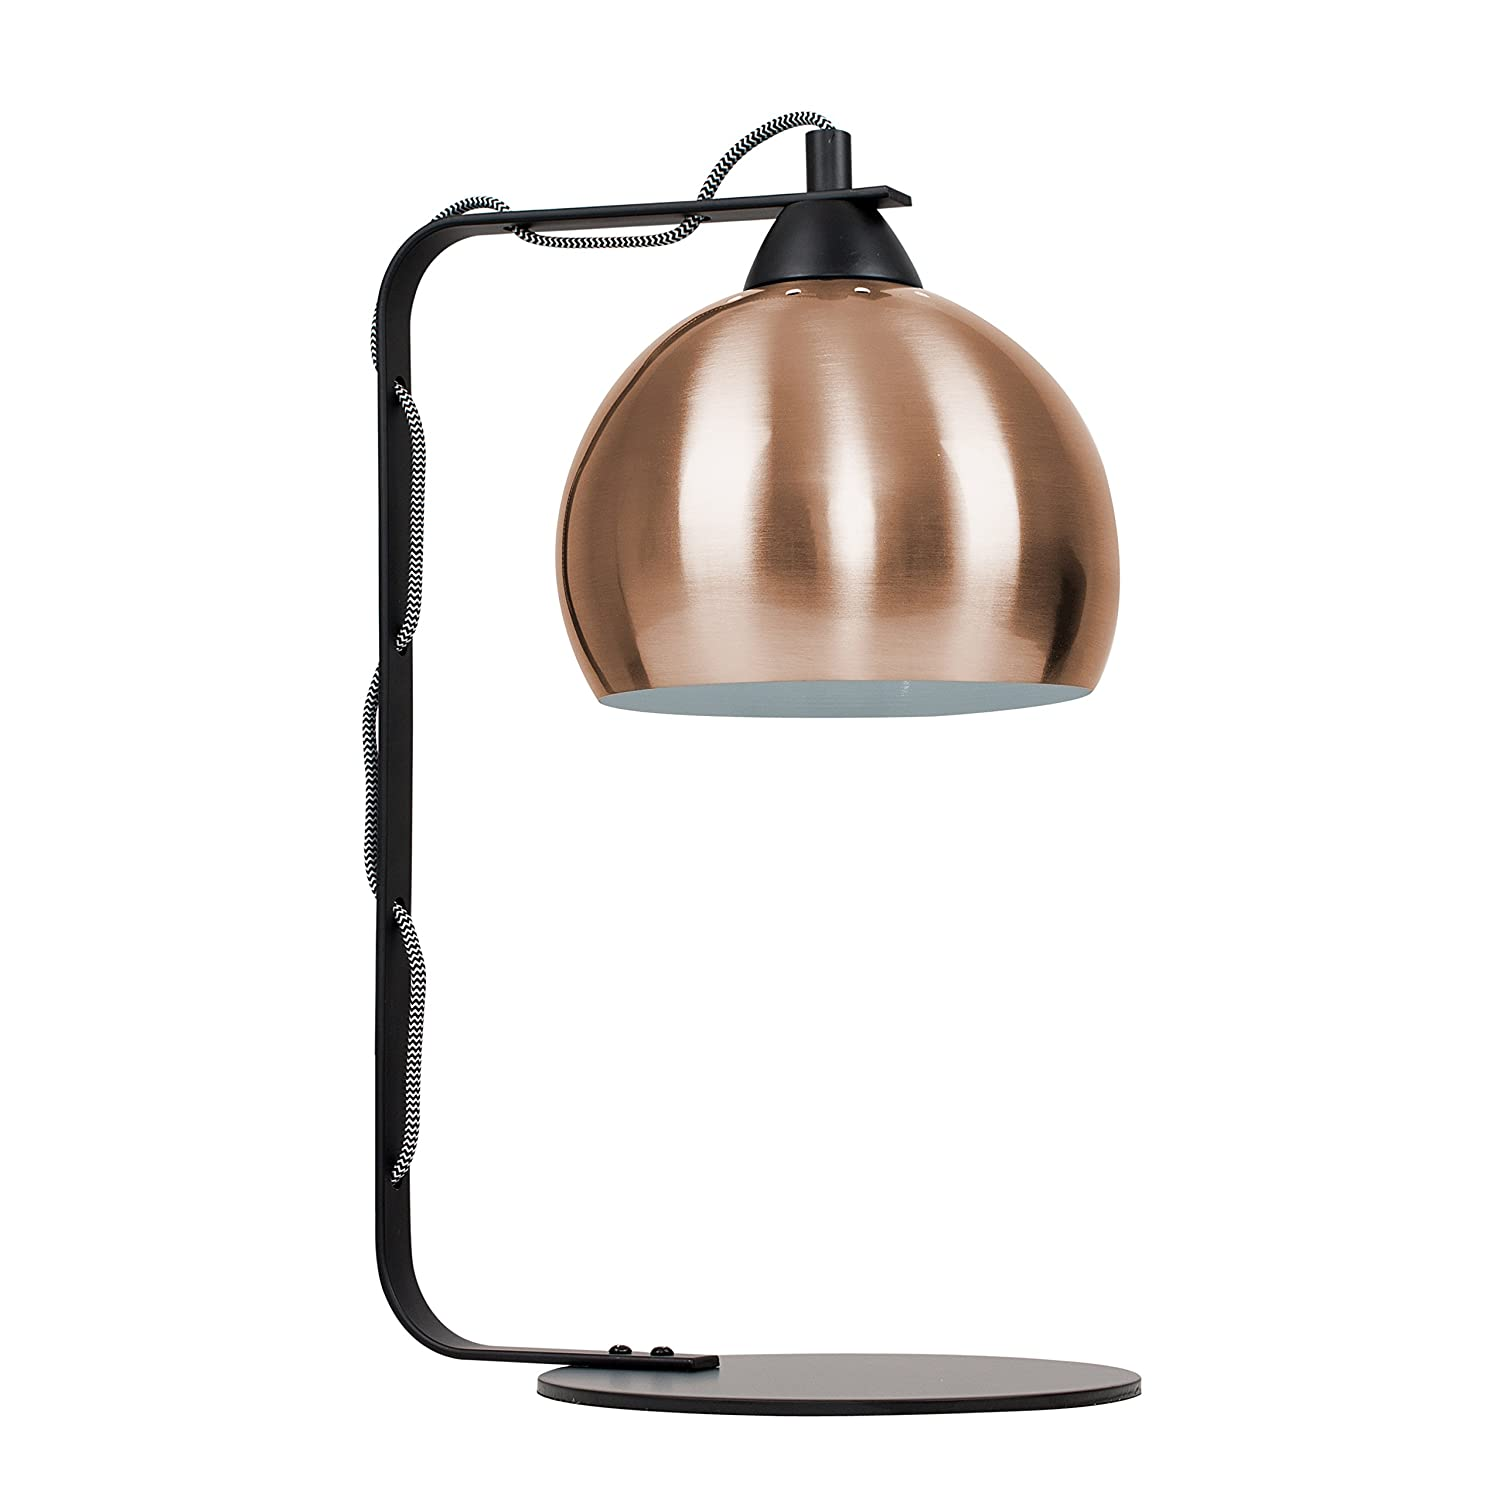 Modern Matt Black Curved Stem Design Table Lamp With A Copper Dome Shade by Amazon